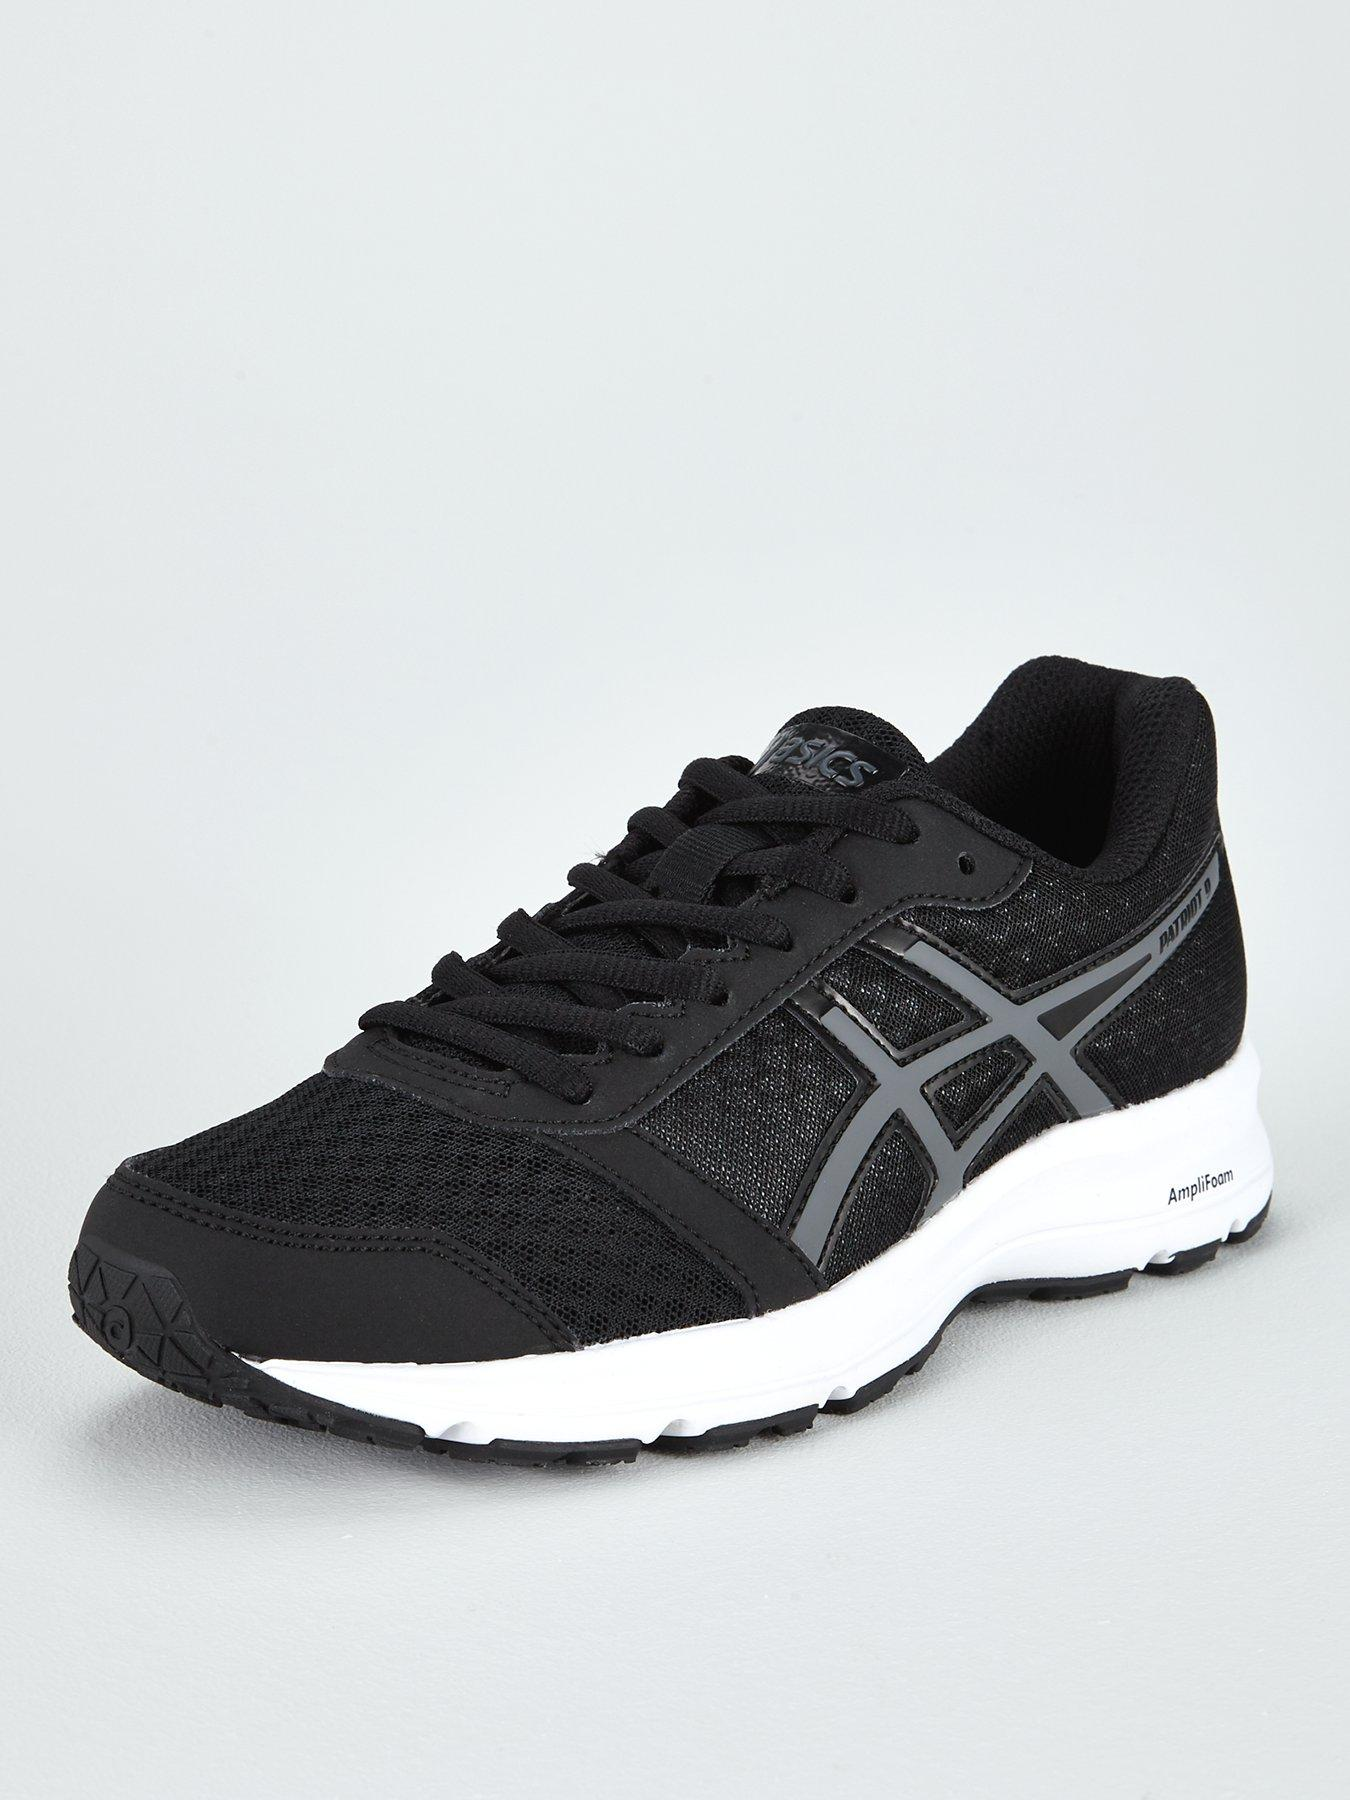 Asics Patriot 9 - Black